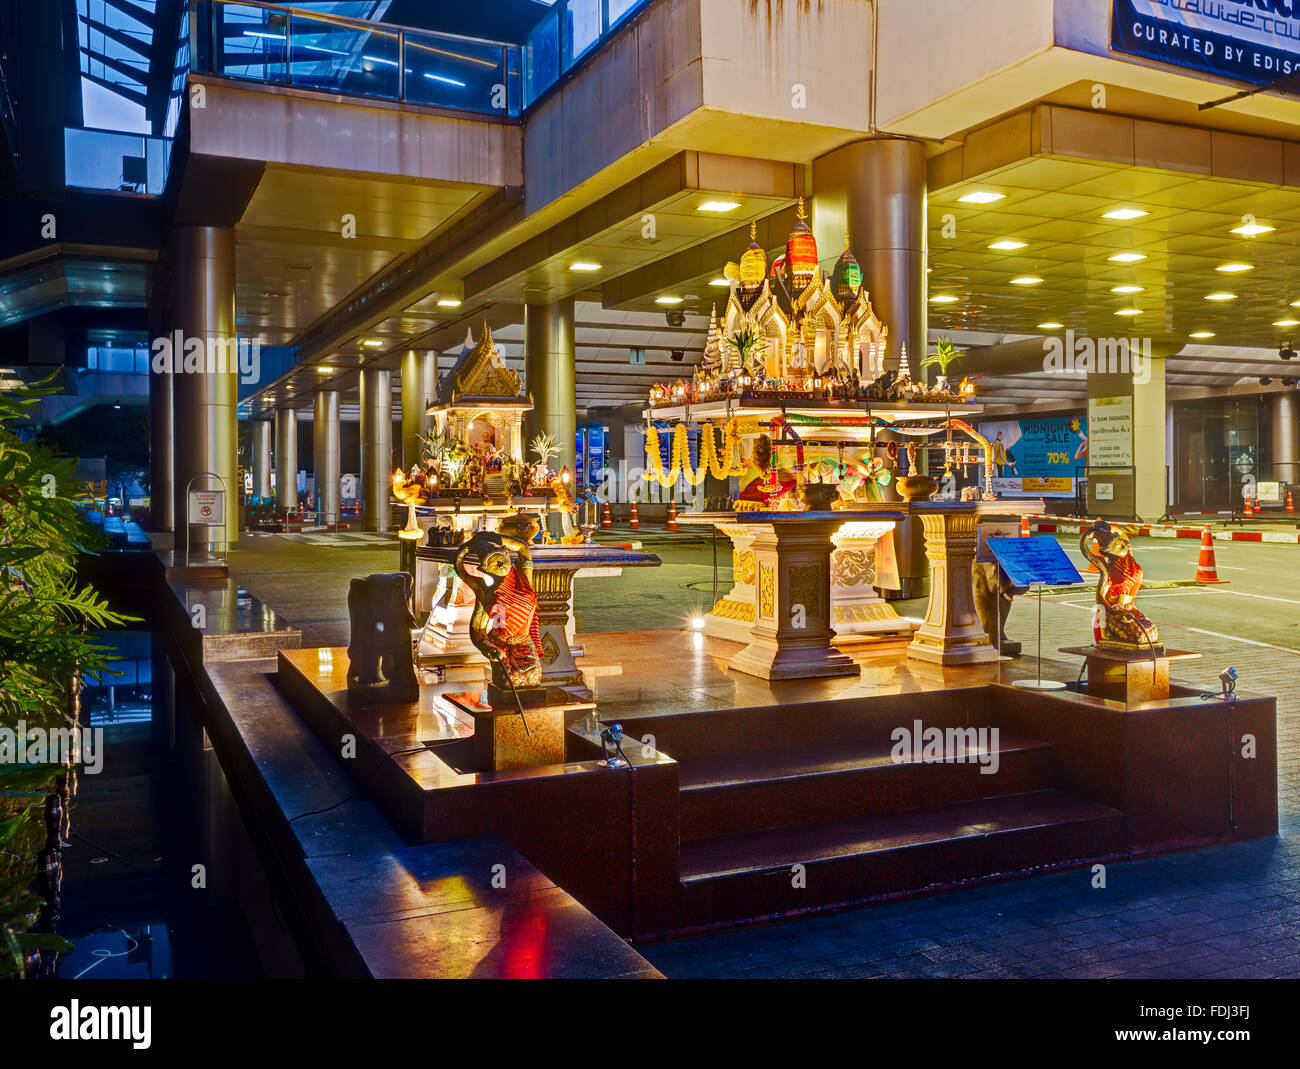 Illuminated shrine at Siam Paragon shopping mall. Bangkok, Thailand. Stock Photo